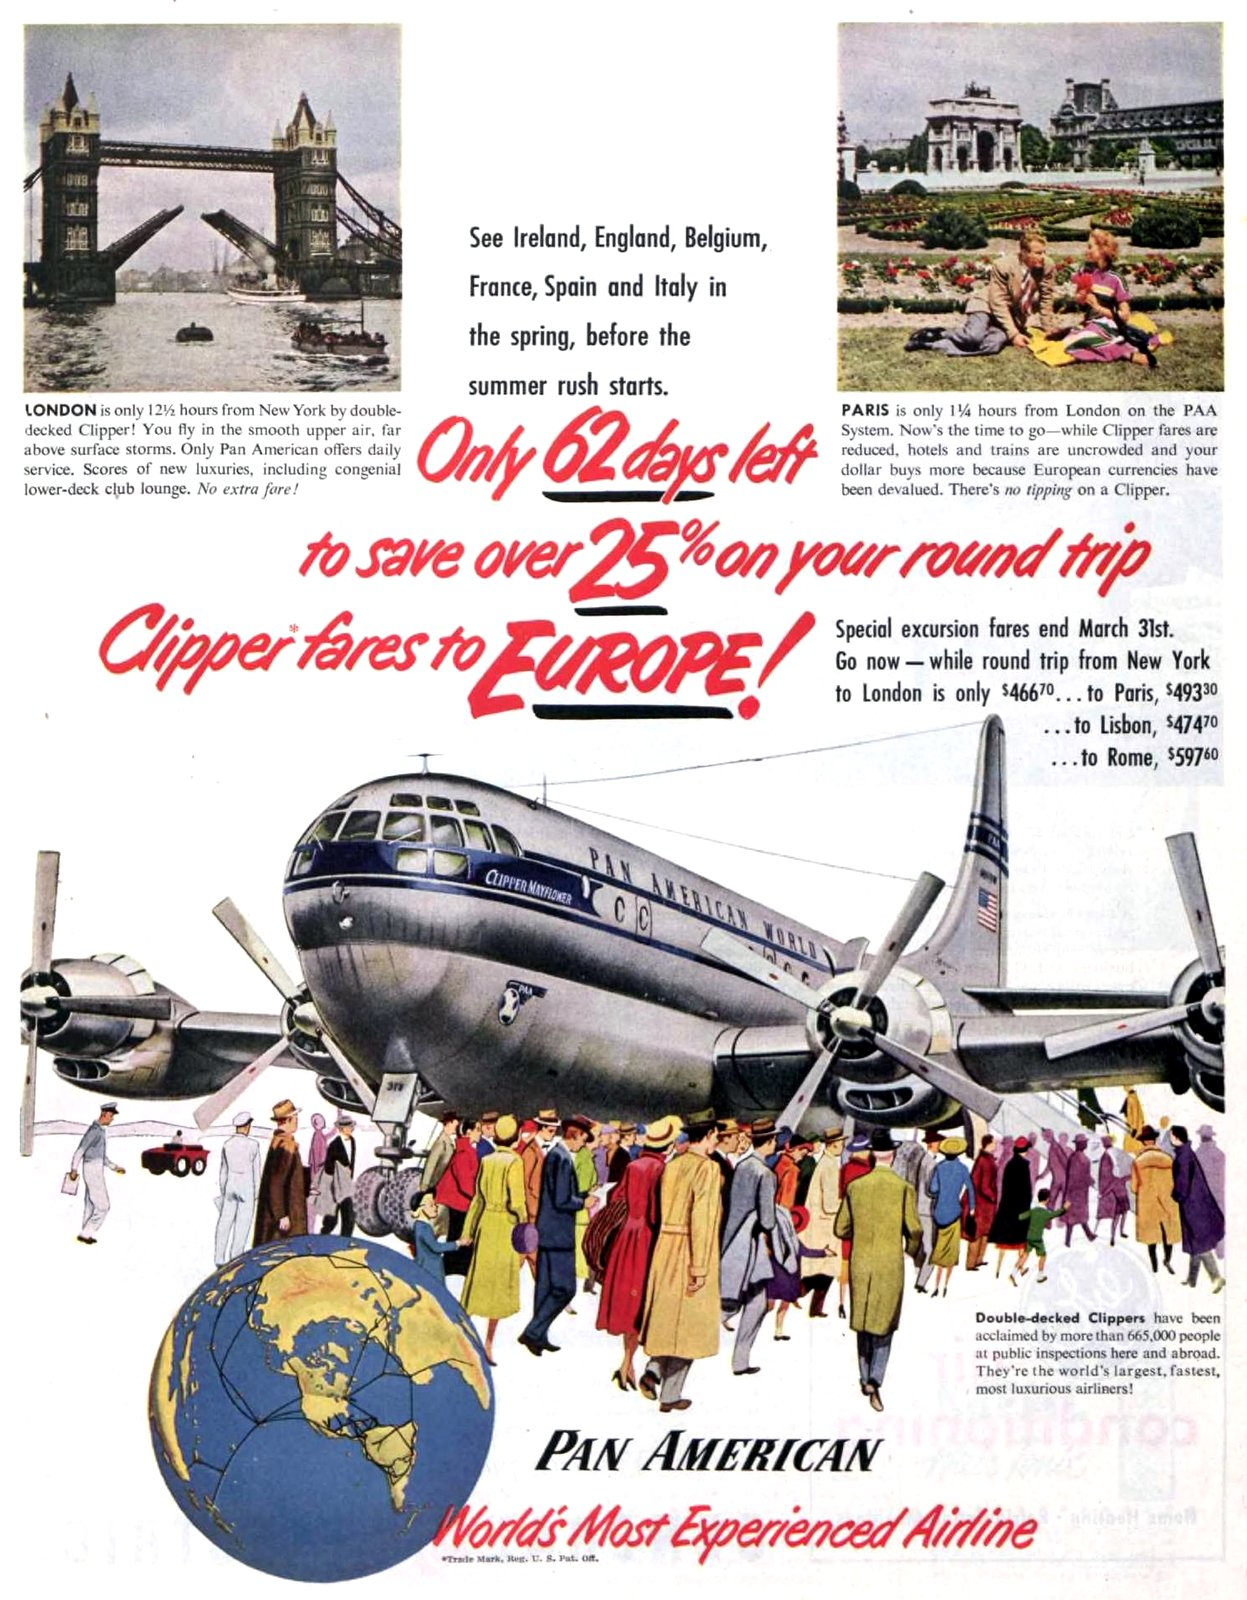 Vintage Pan-American Airlines - Clipper fares to Europe (1950)